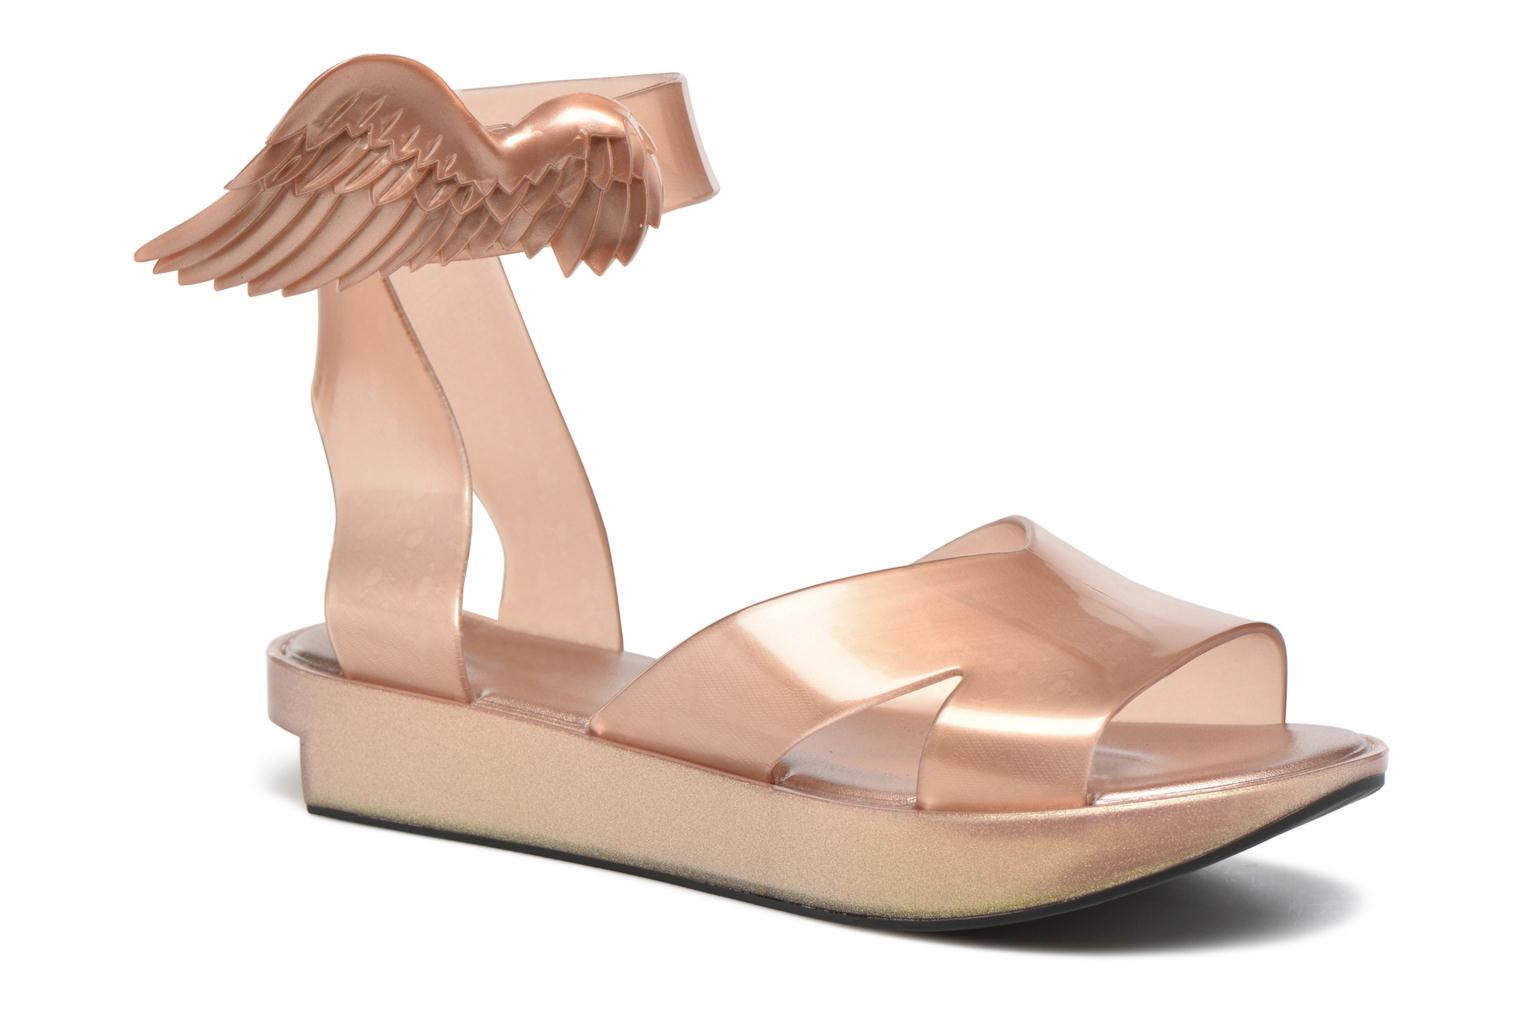 Melissa x Vivienne Westwood - Anglomania Rocking Horse Pink